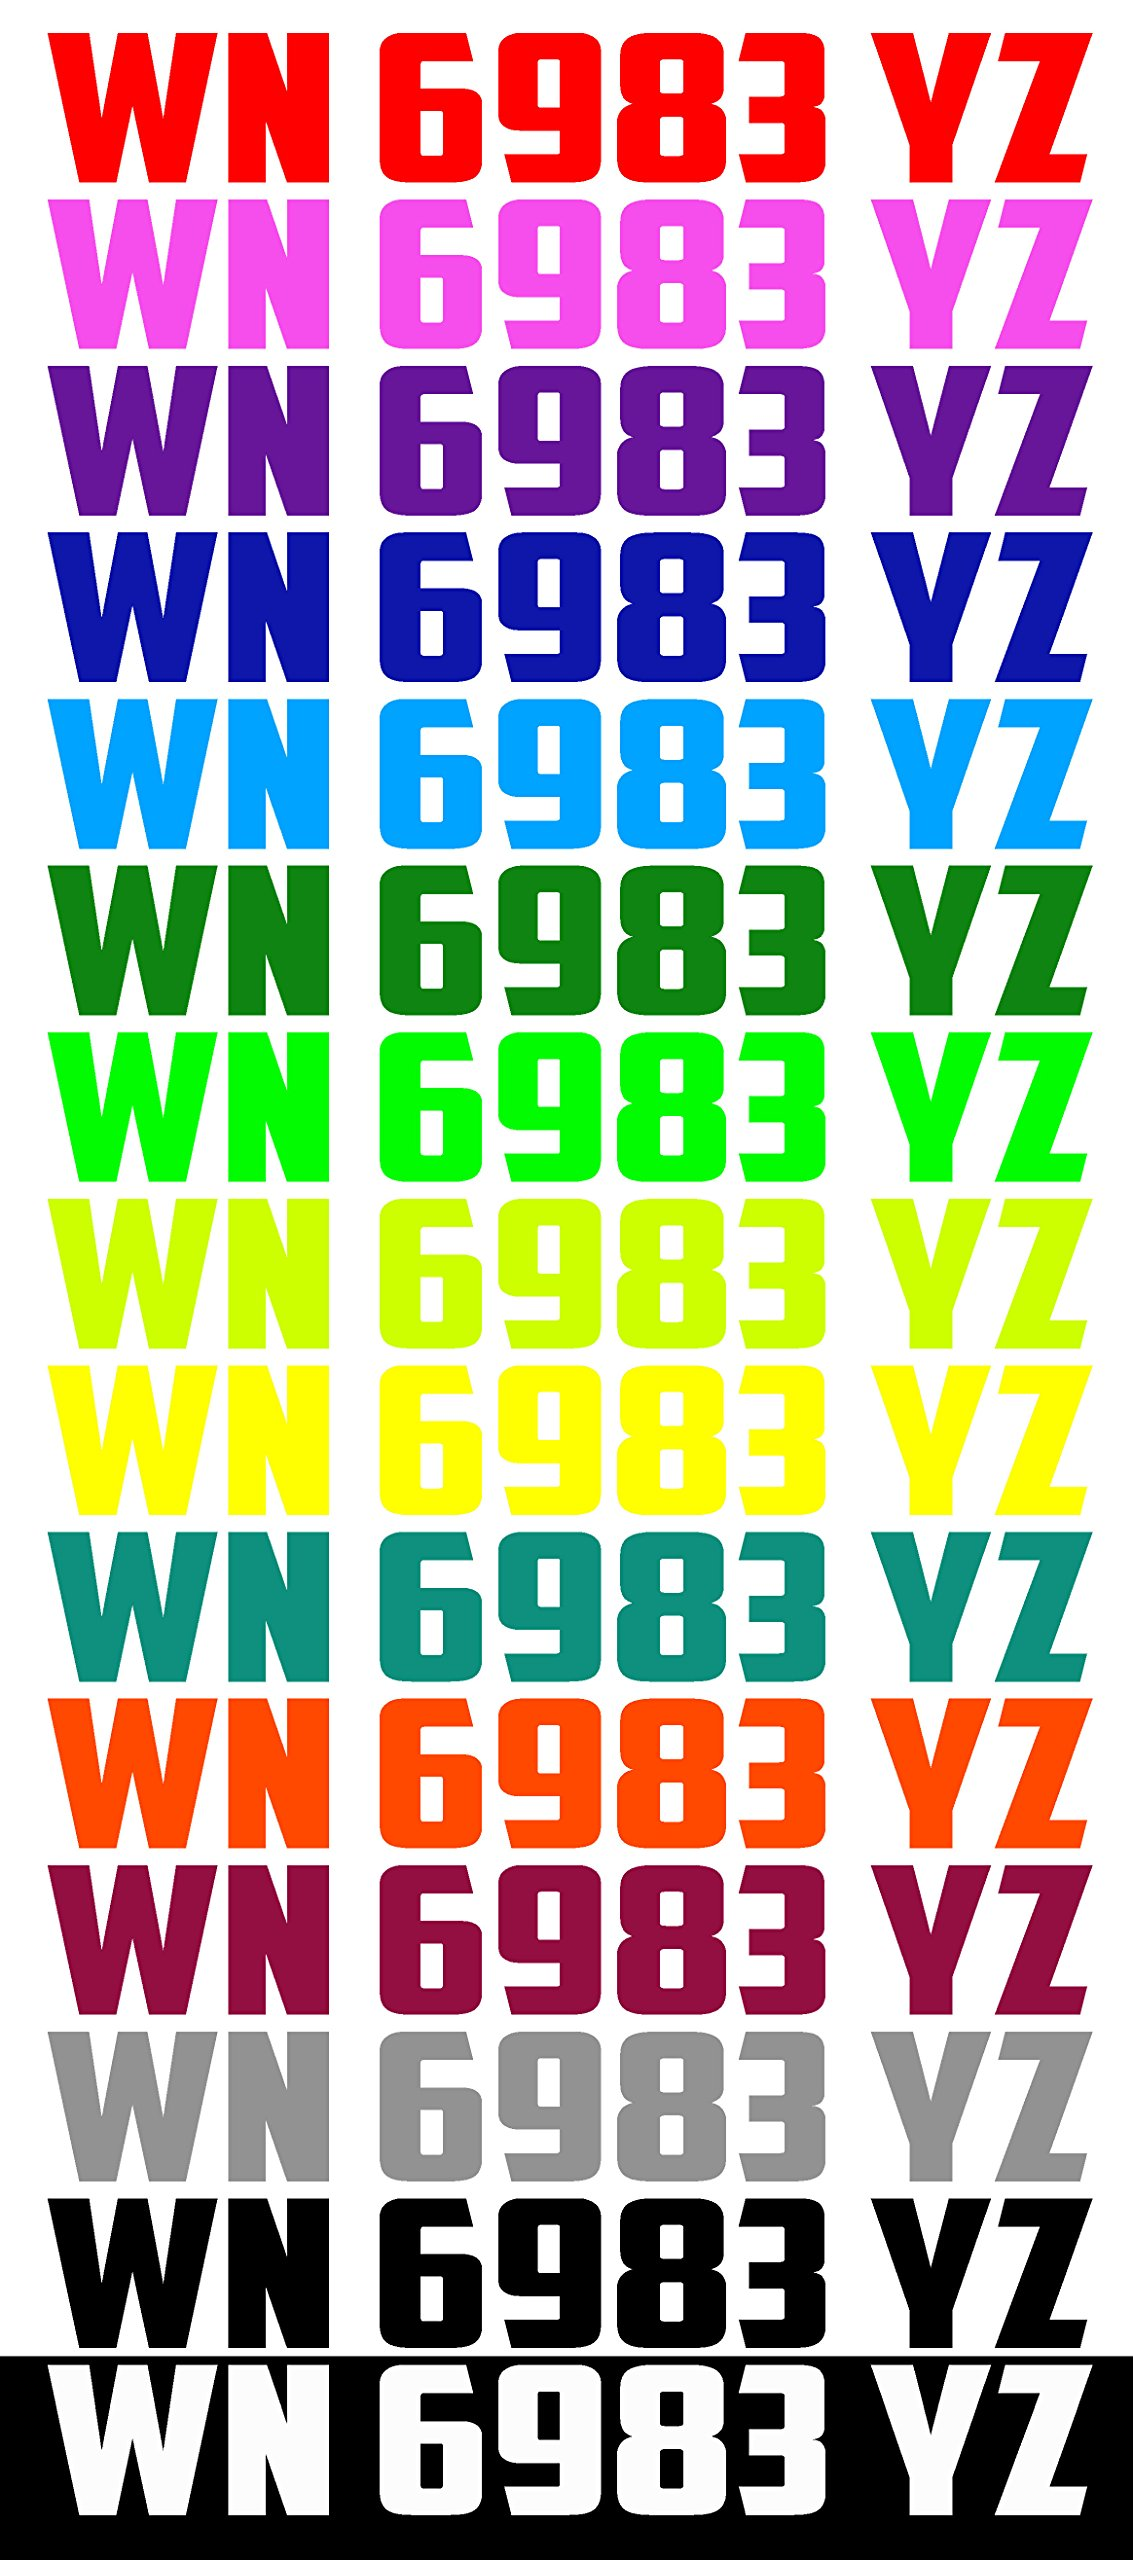 JUST RIDE Custom Boat or PWC Registration Hull ID Number Decal Sticker Set of 2